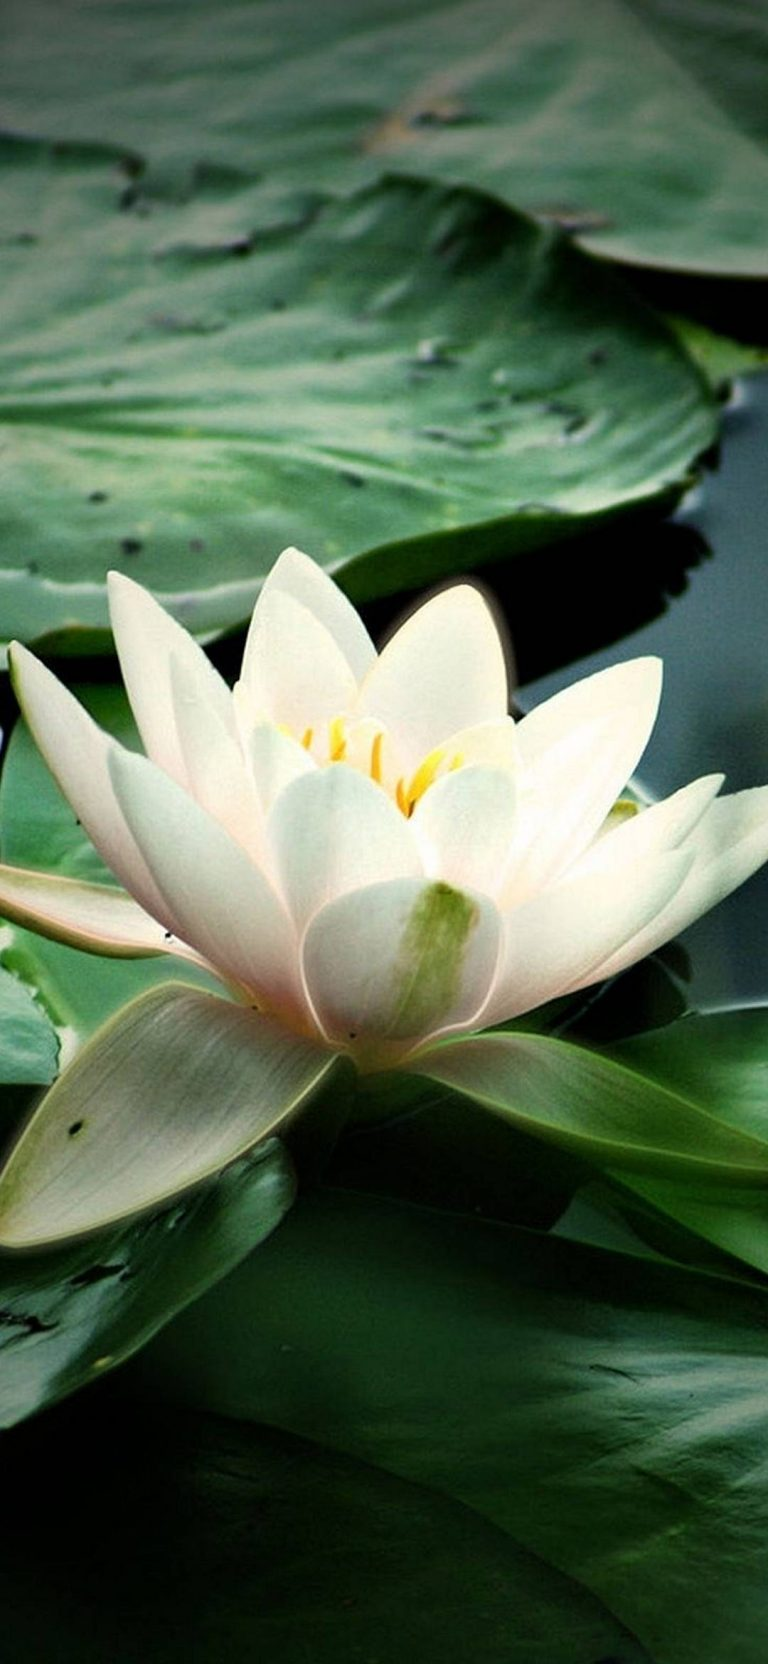 Lily Water Leaves 1080x2340 768x1664